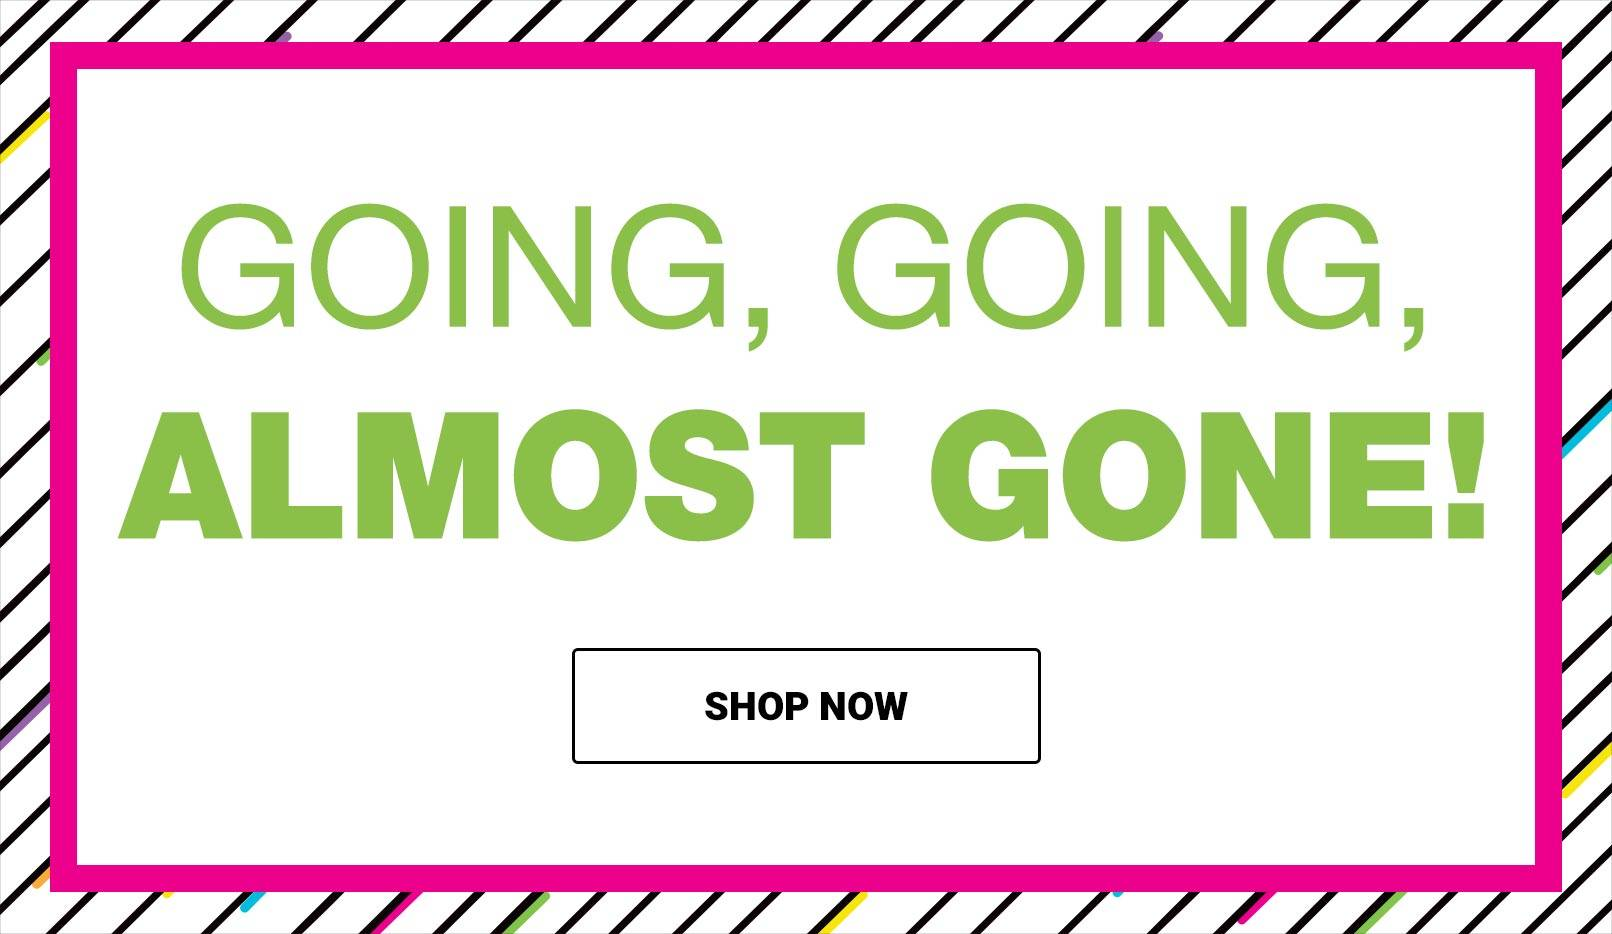 Last Chance for Clearance Teaching Supplies!